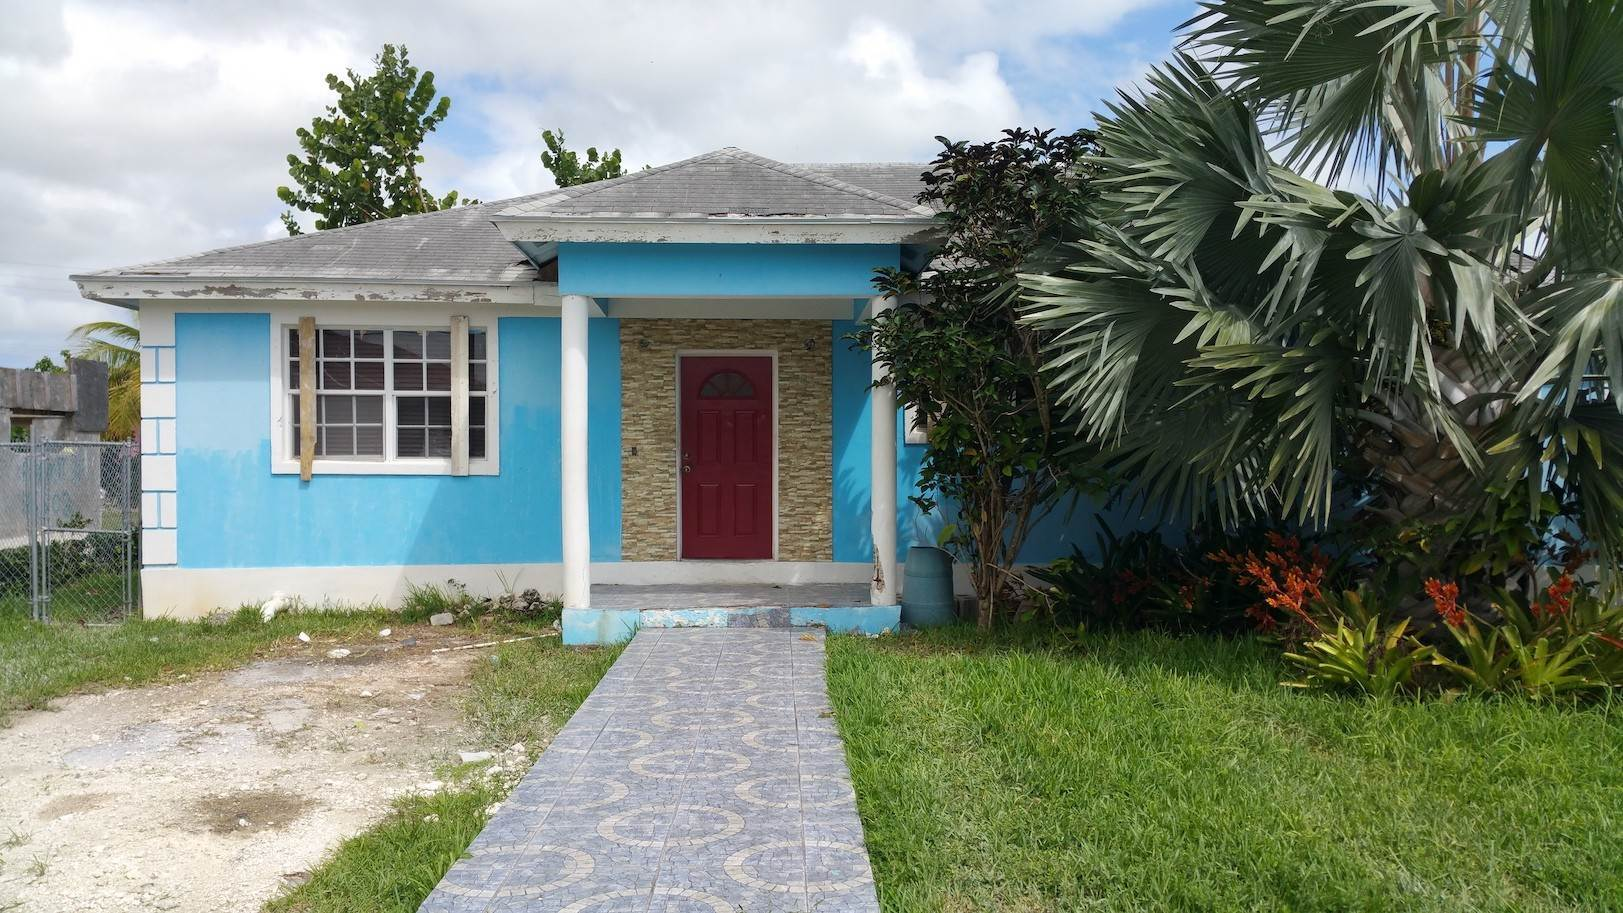 Single Family Homes for Sale at One of A Kind Residential Family Home in Faith Gardens Faith Gardens, Nassau And Paradise Island, Bahamas